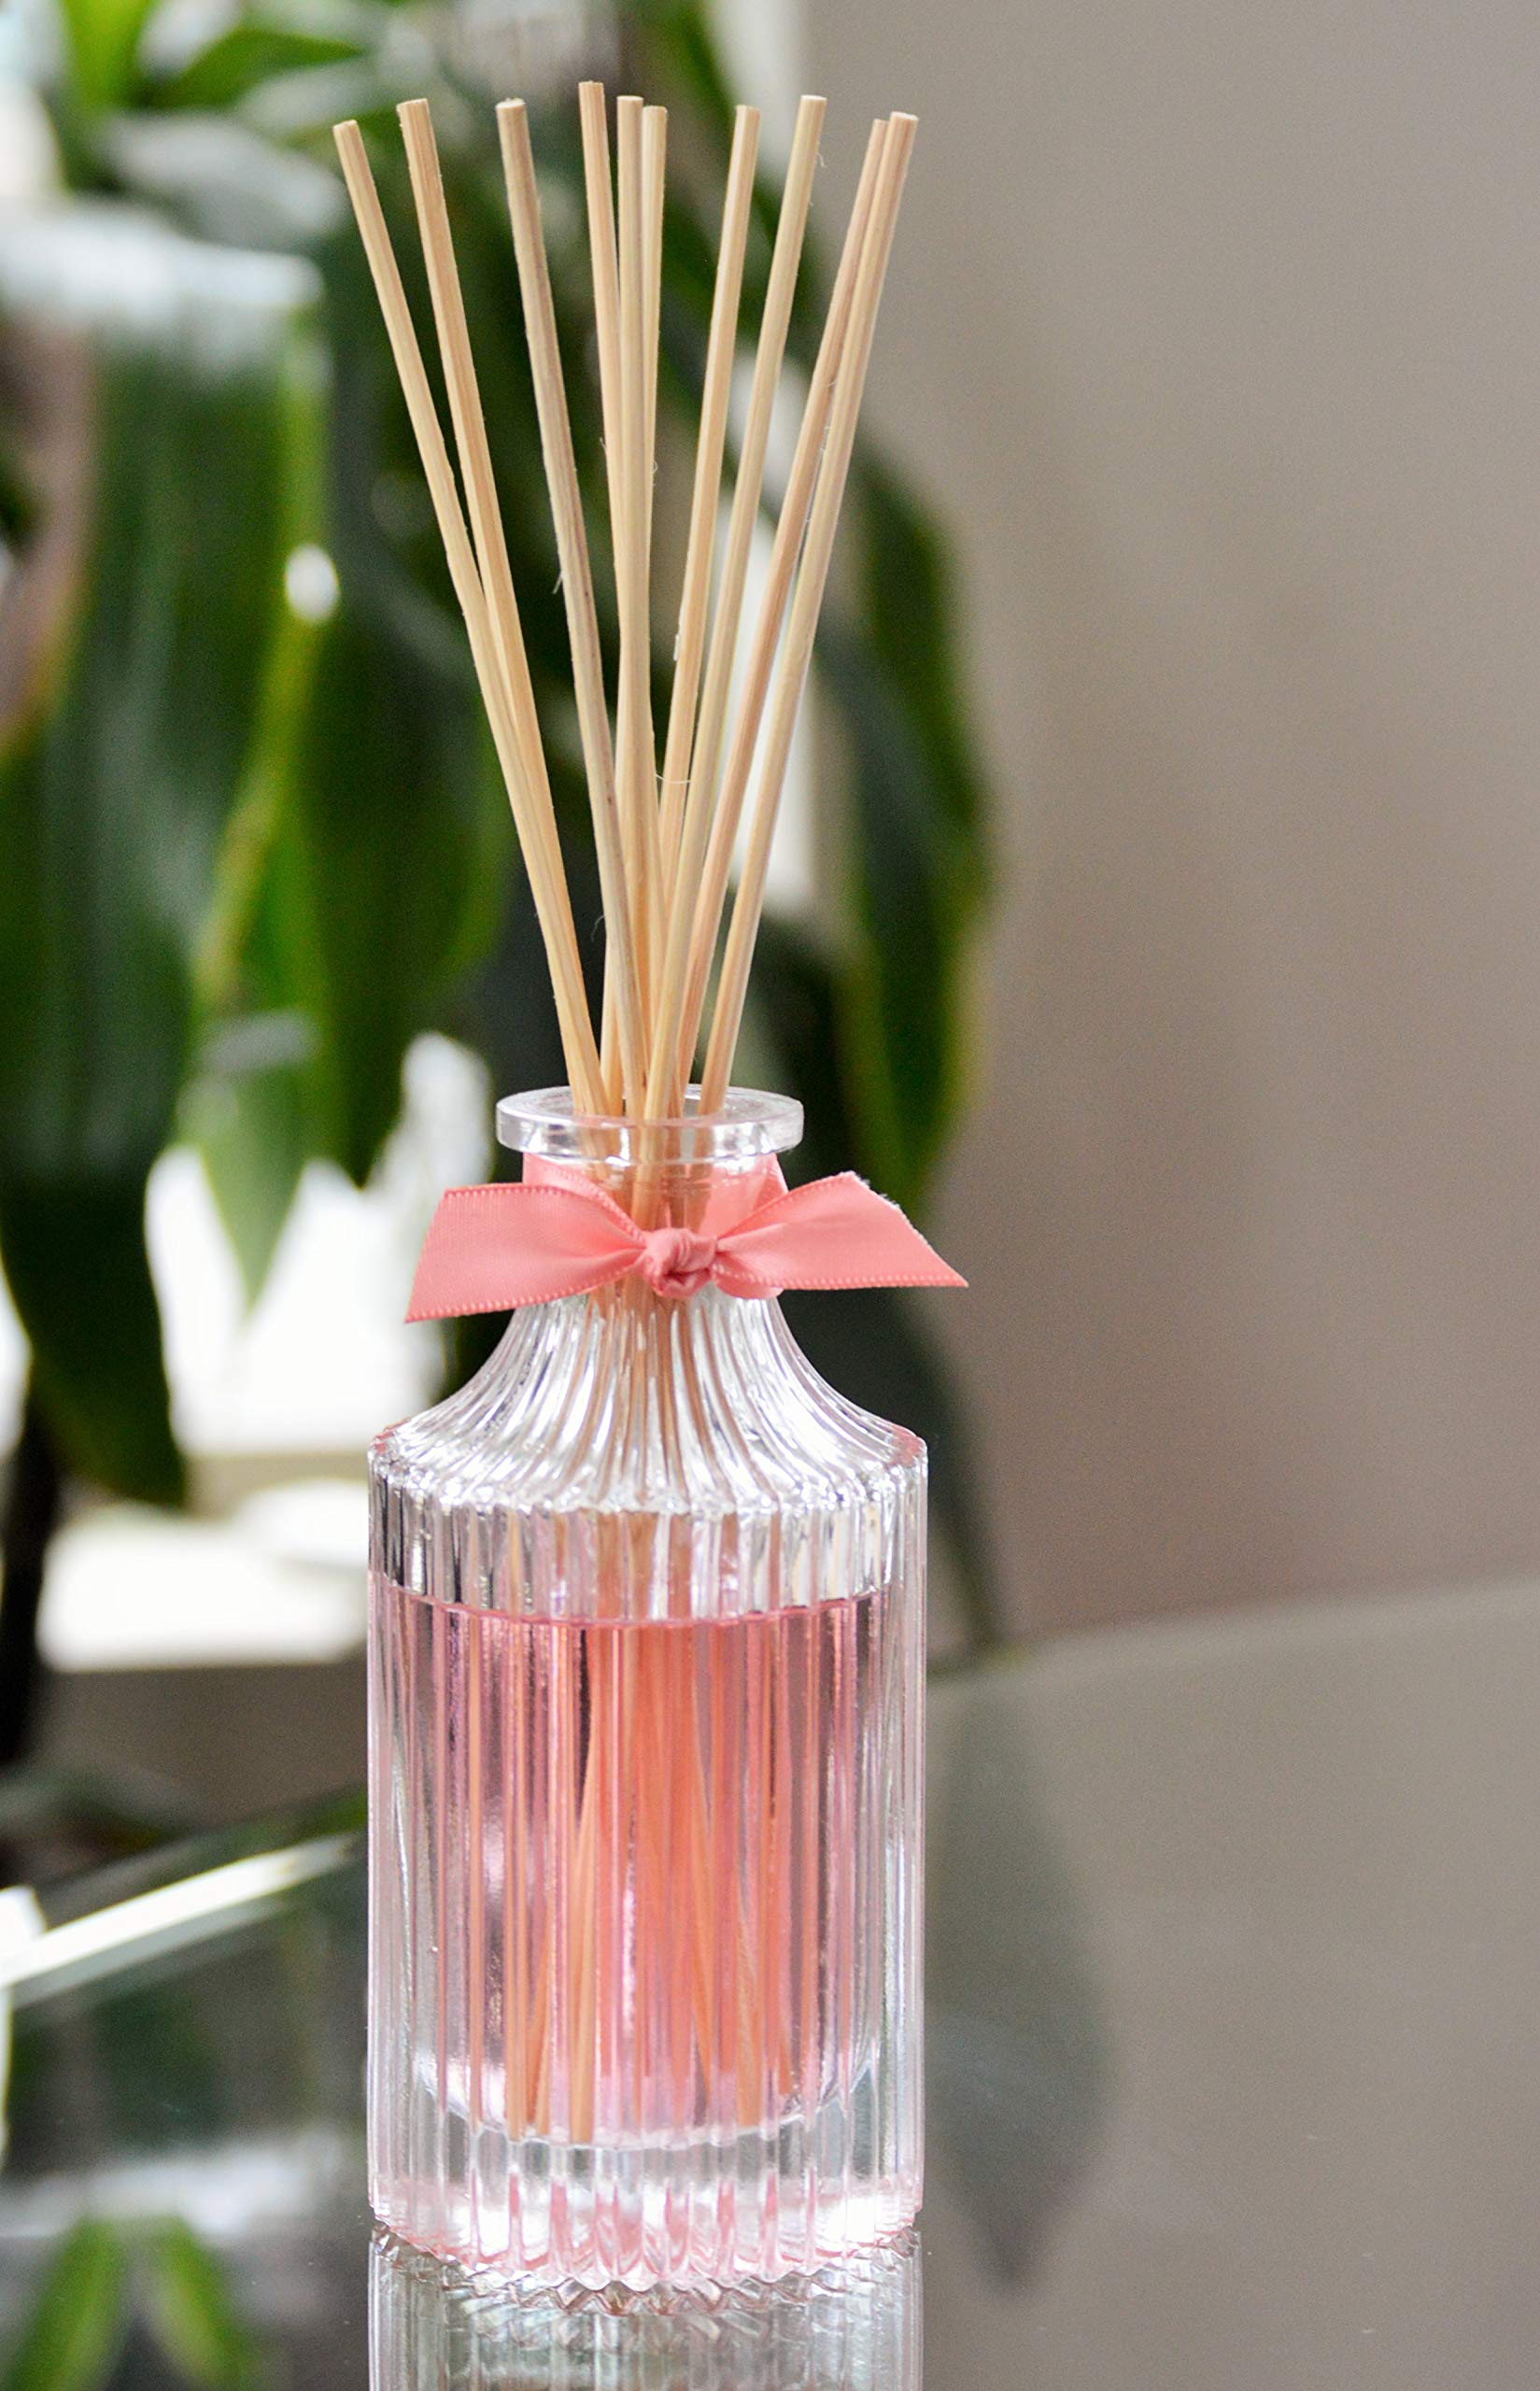 Best Rated in Reed Diffuser Sets & Helpful Customer